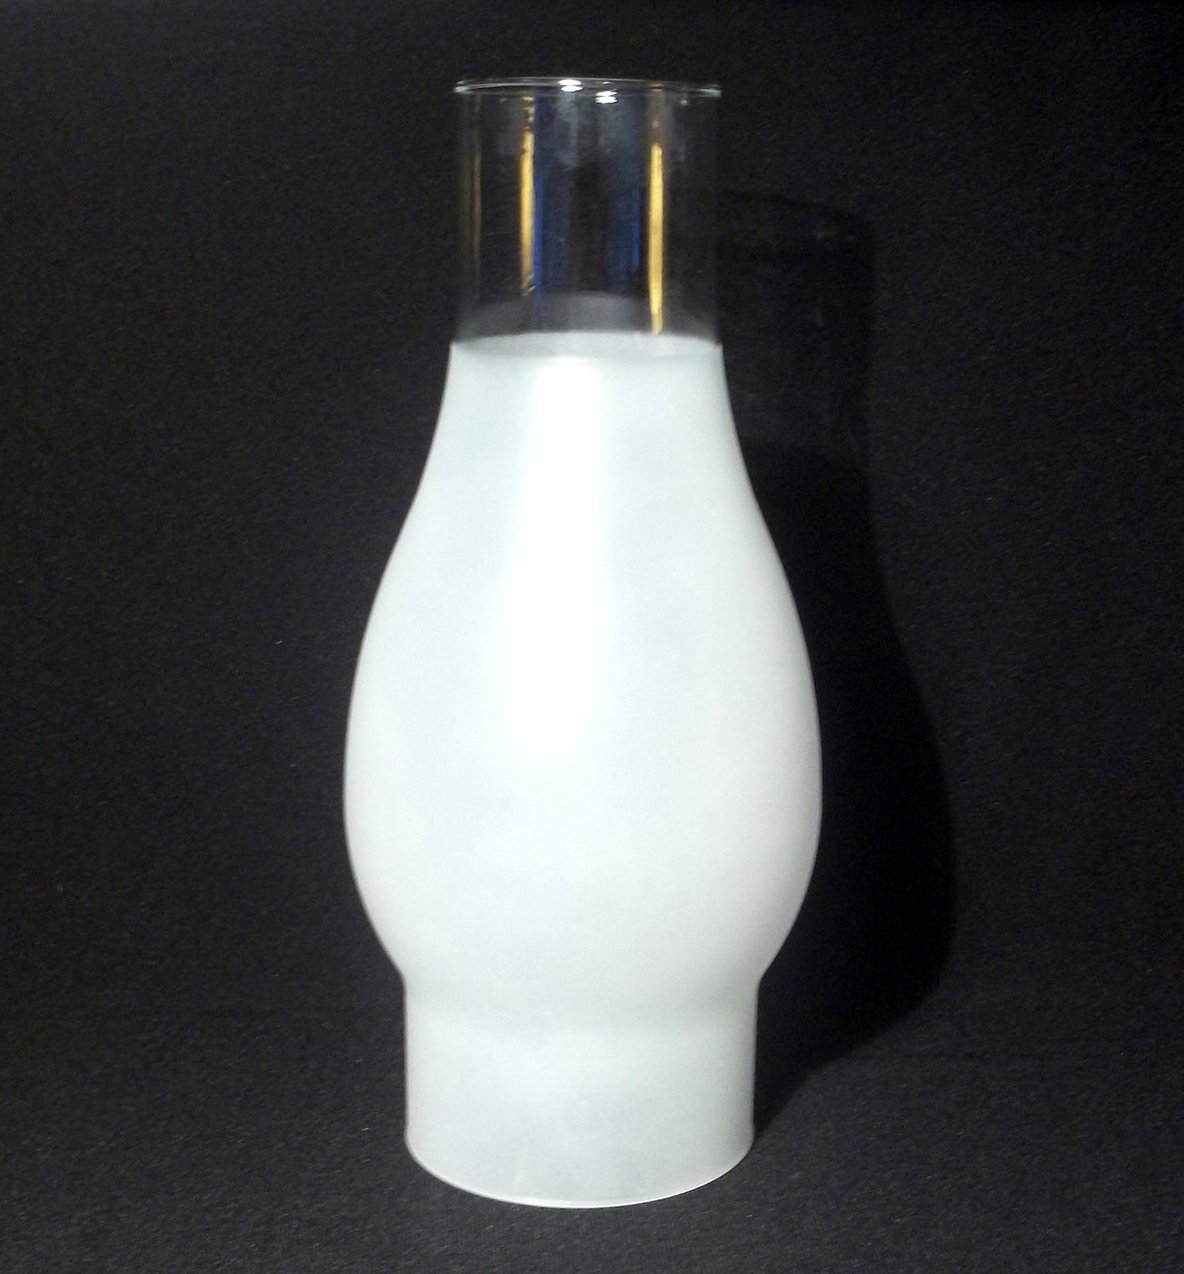 Hurricane Lamp Shade 3 4 Frosted 2 5 8 Inch Fitter X 7 7 8 Oos